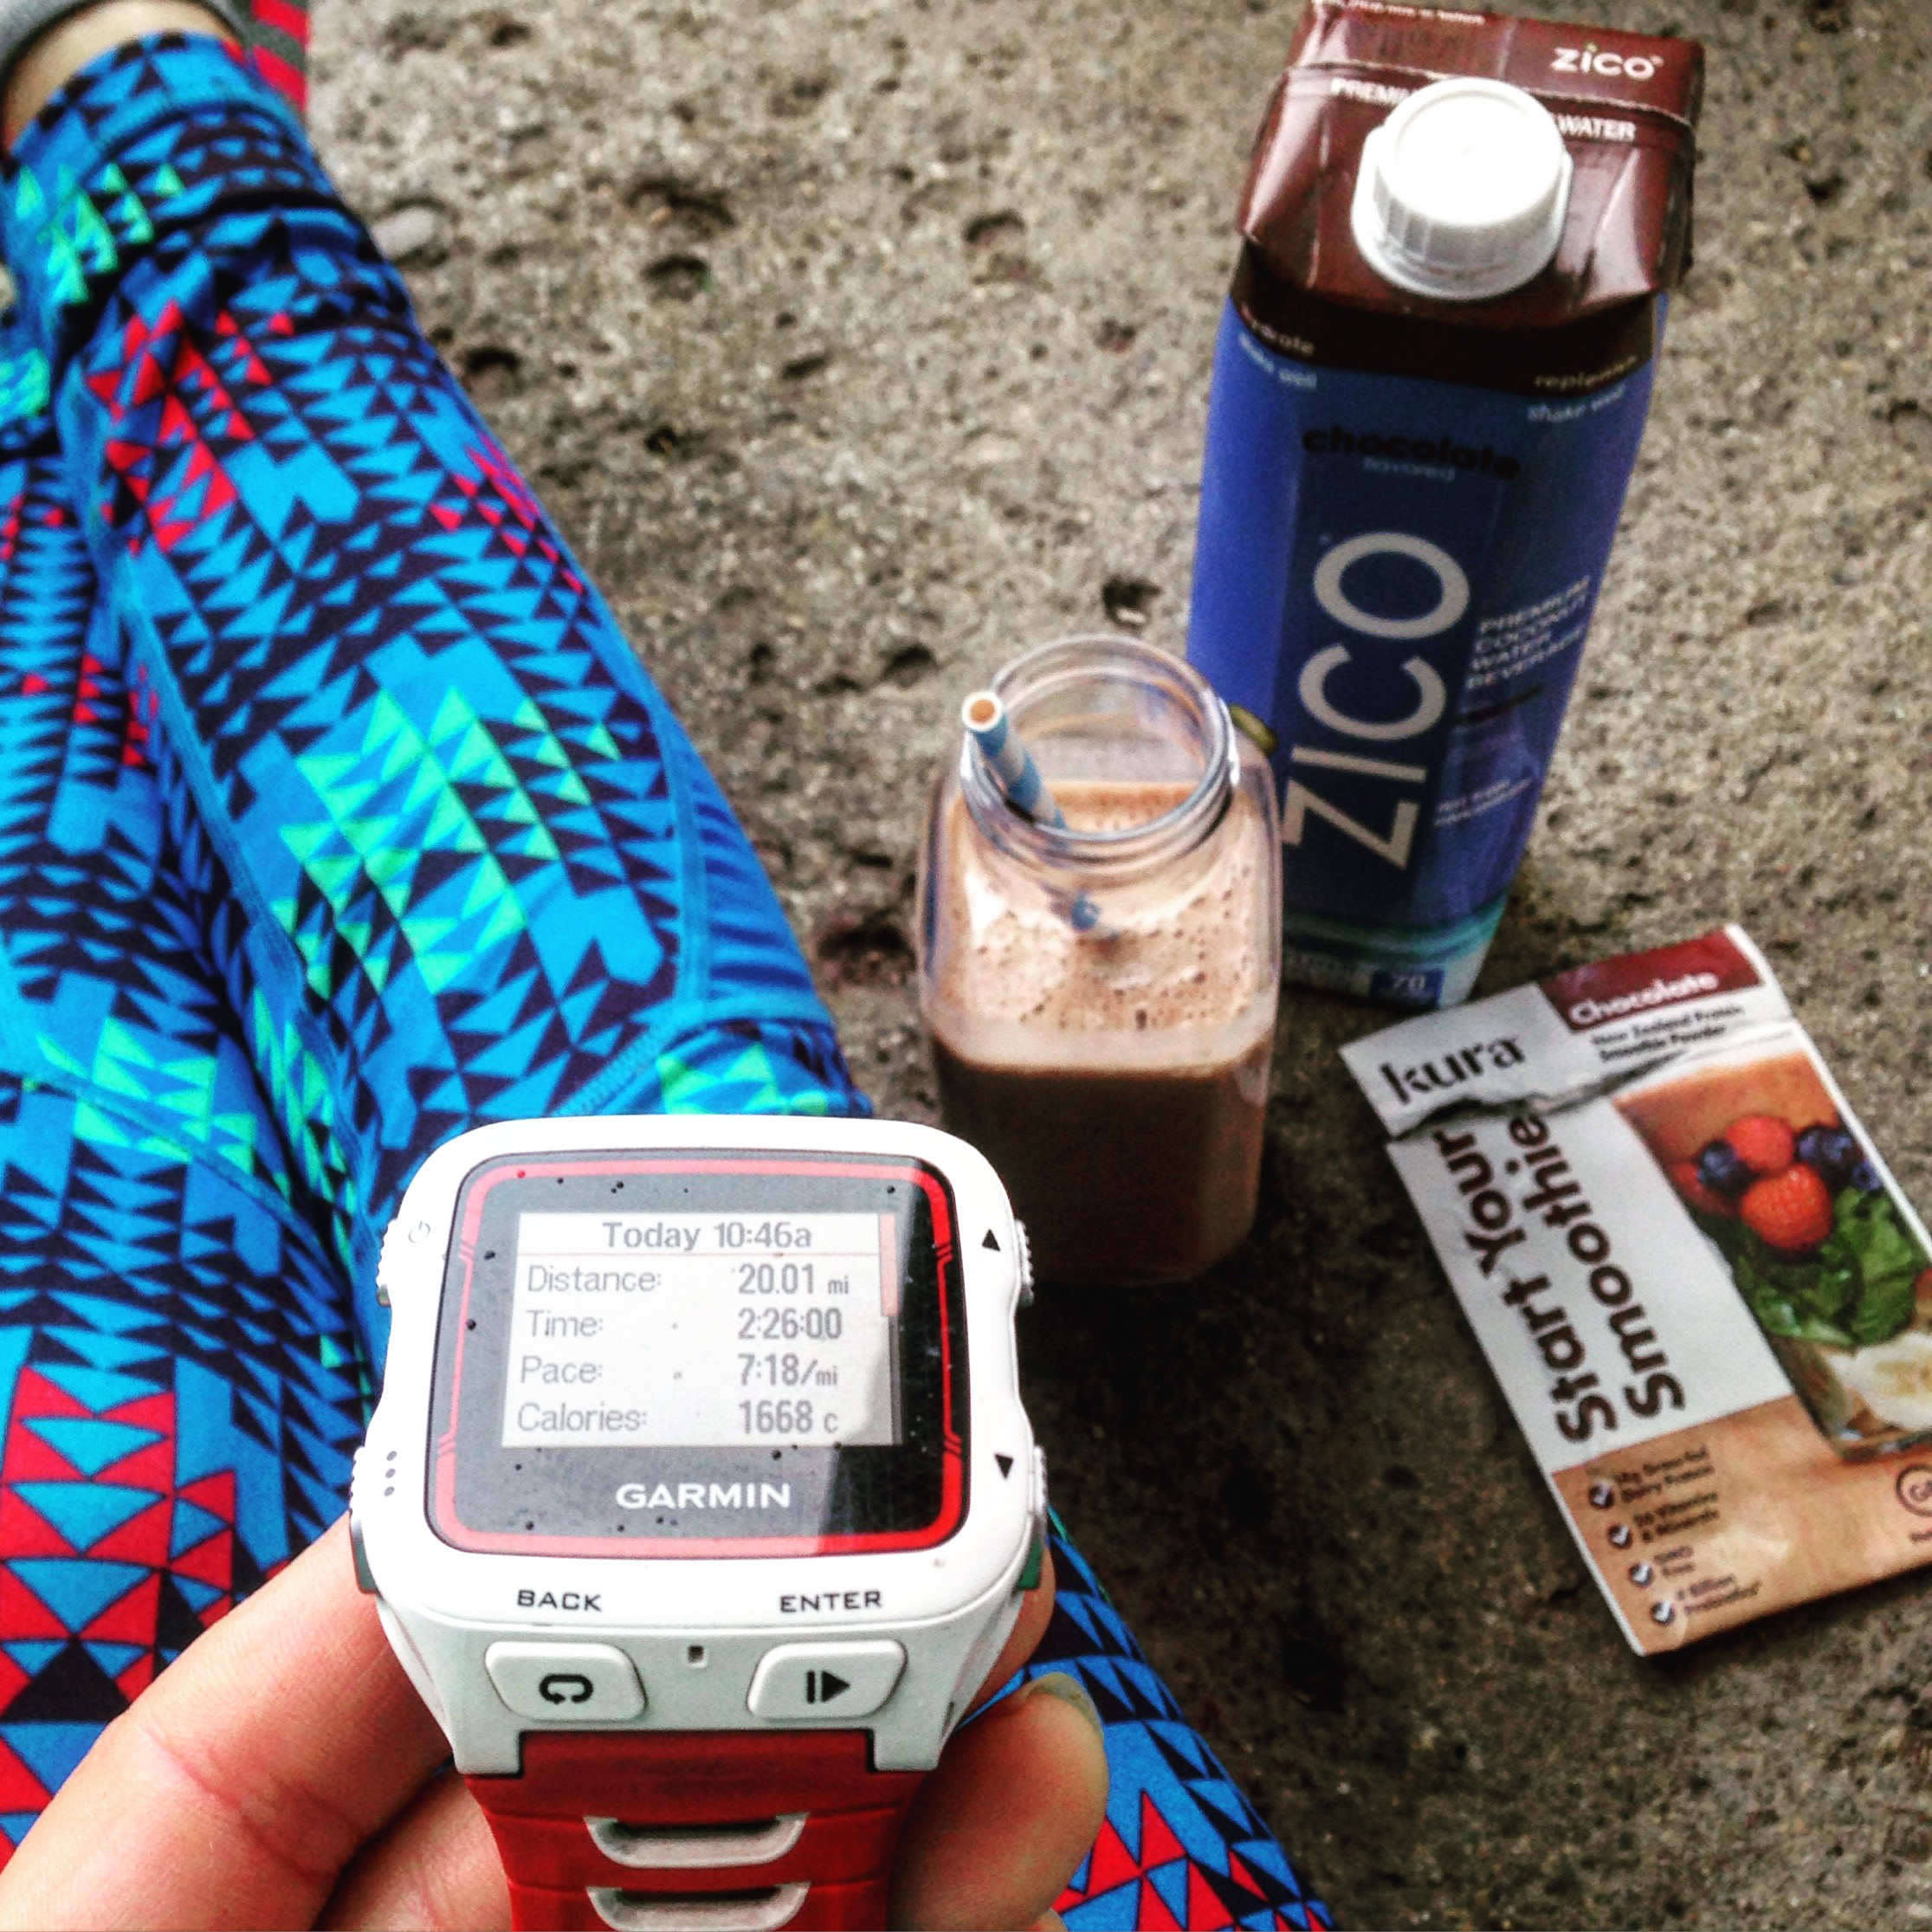 Post run recover is important to stay strong